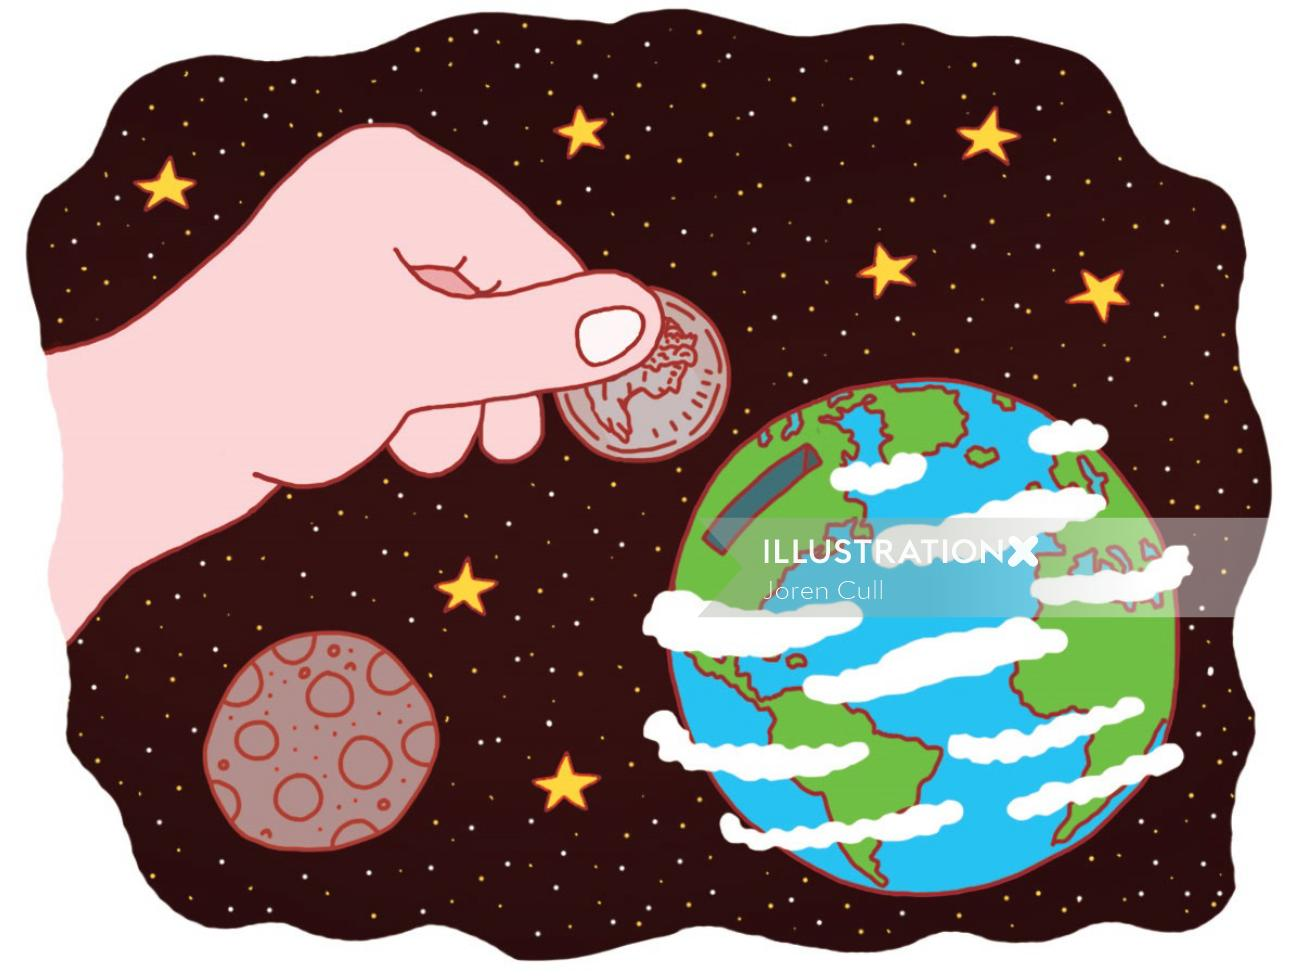 """Illustration for an article discussing corporation's """"environmental funds""""."""